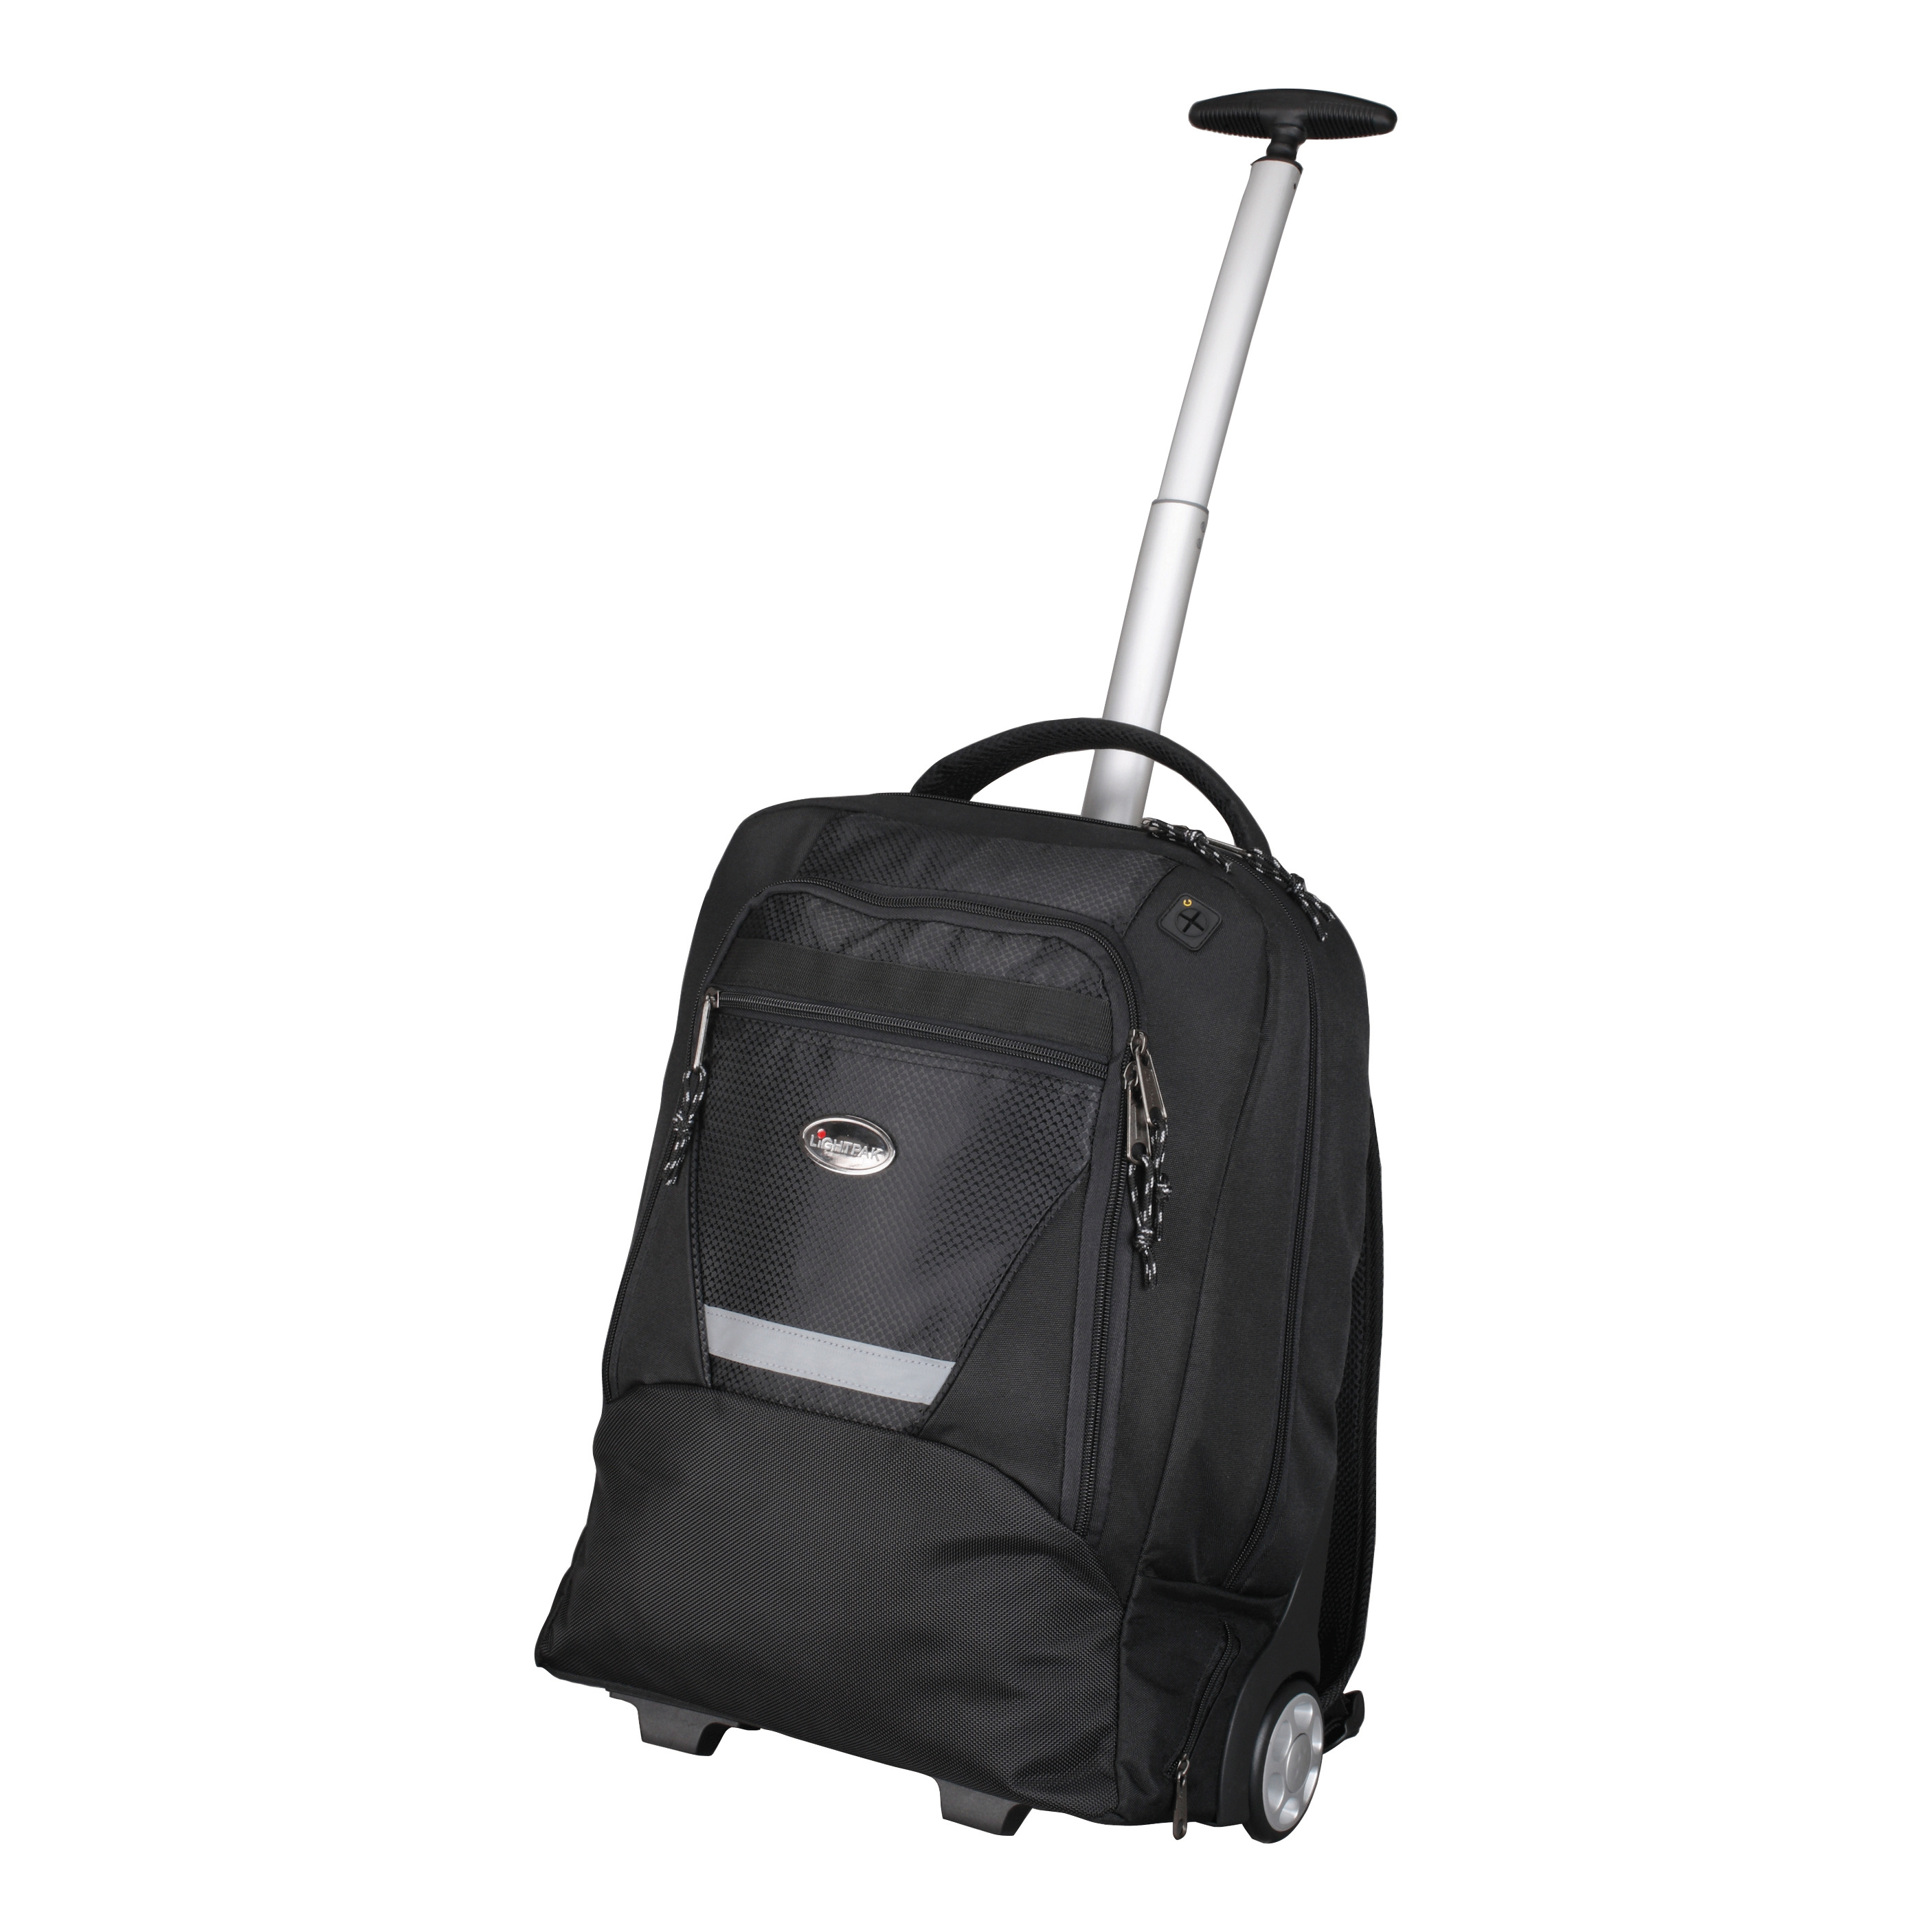 Bags & Cases Lightpak Master Laptop Backpack with Trolley Nylon Capacity 17in Black Ref 46005